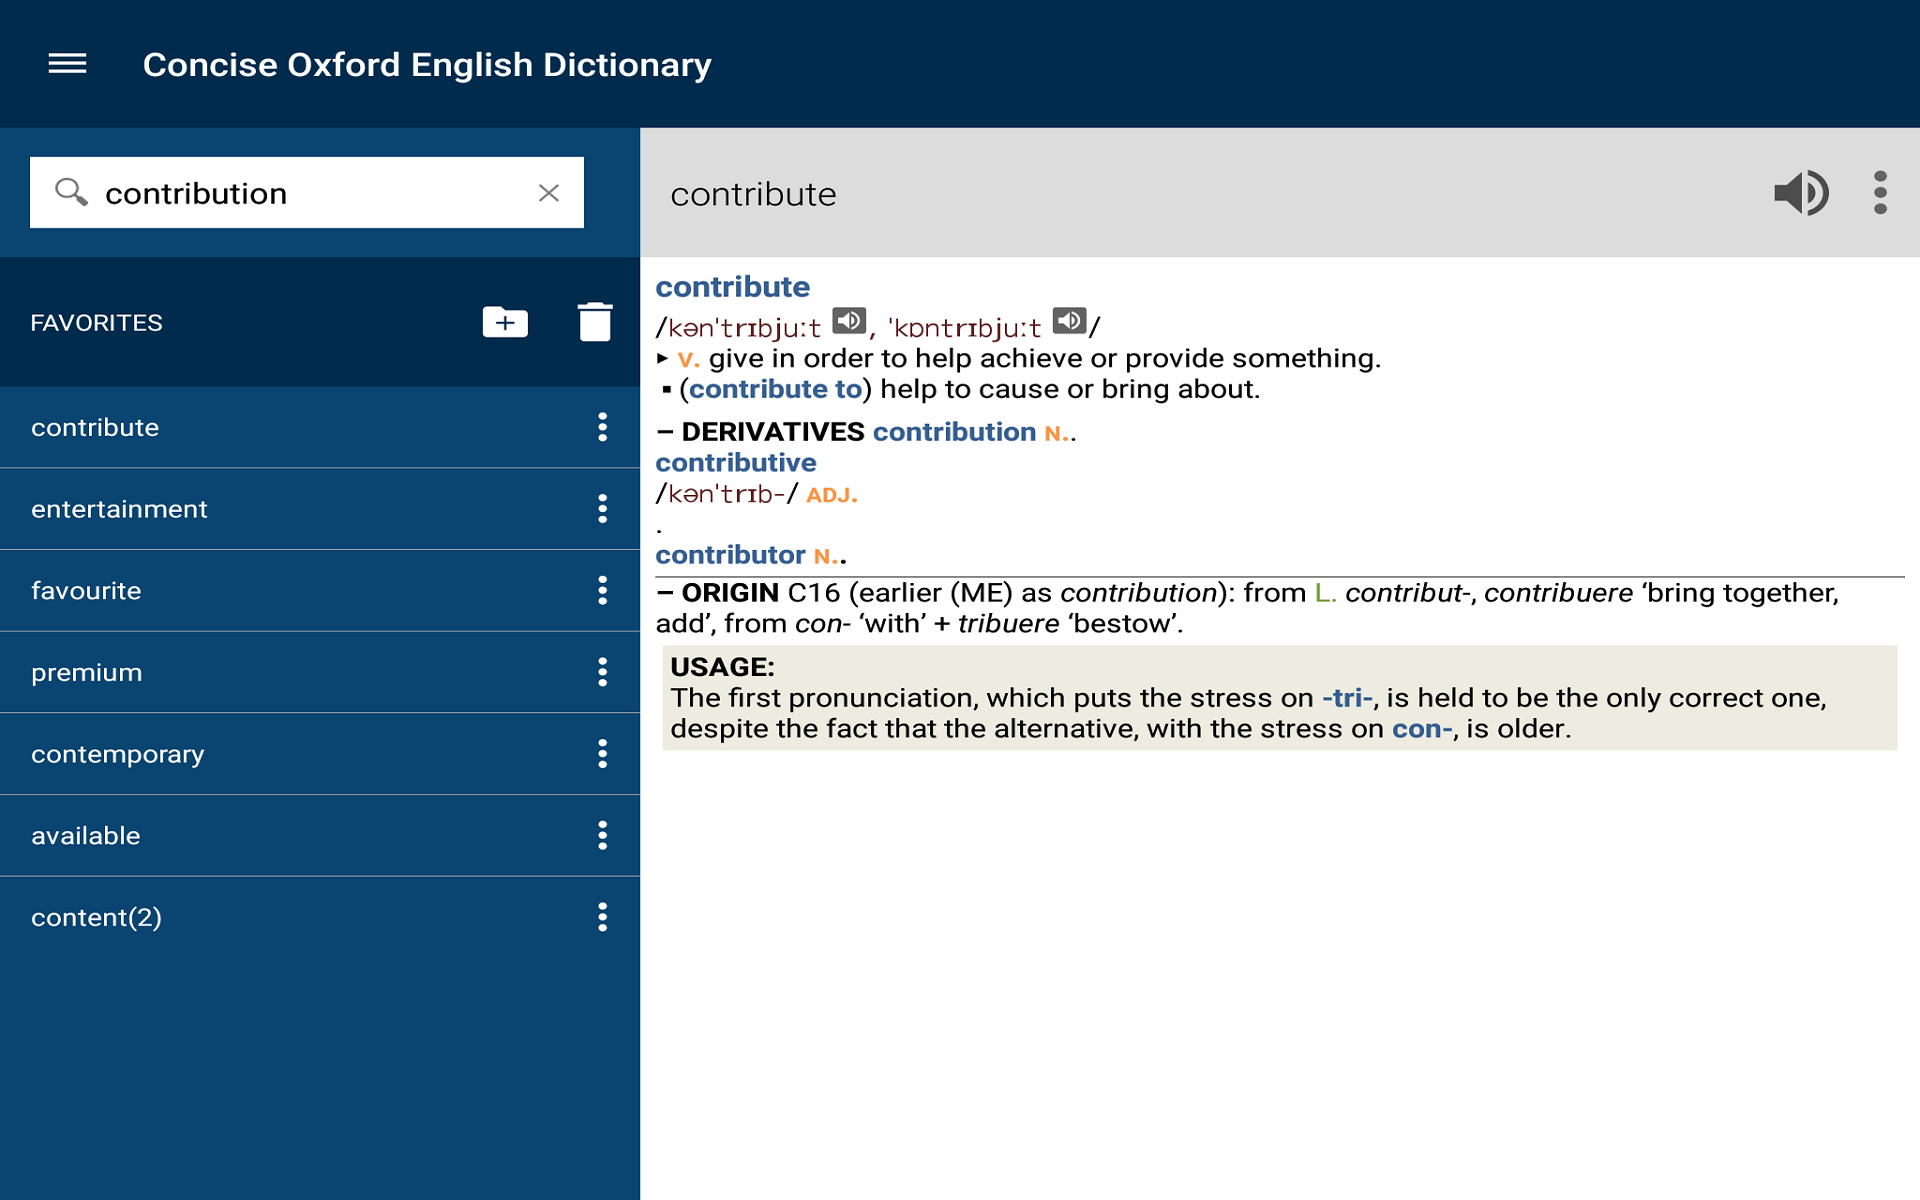 Buy Oxford Dictionary of English - Microsoft Store